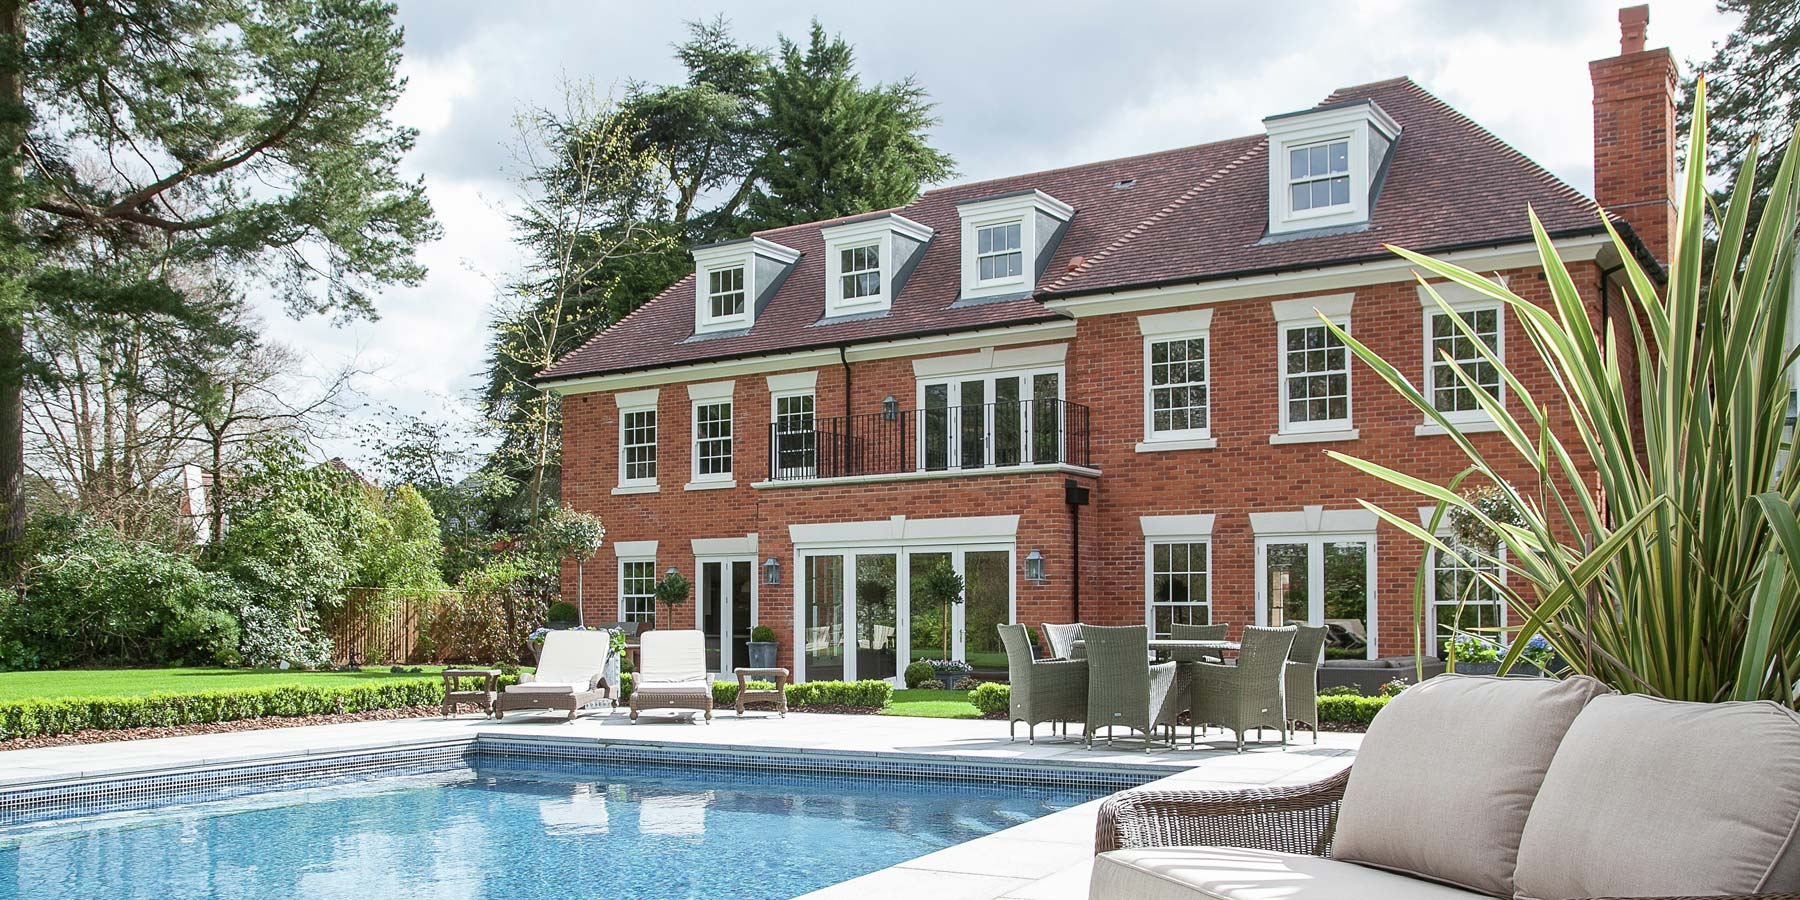 Uncategorized millgate for Mansions in the hamptons for sale